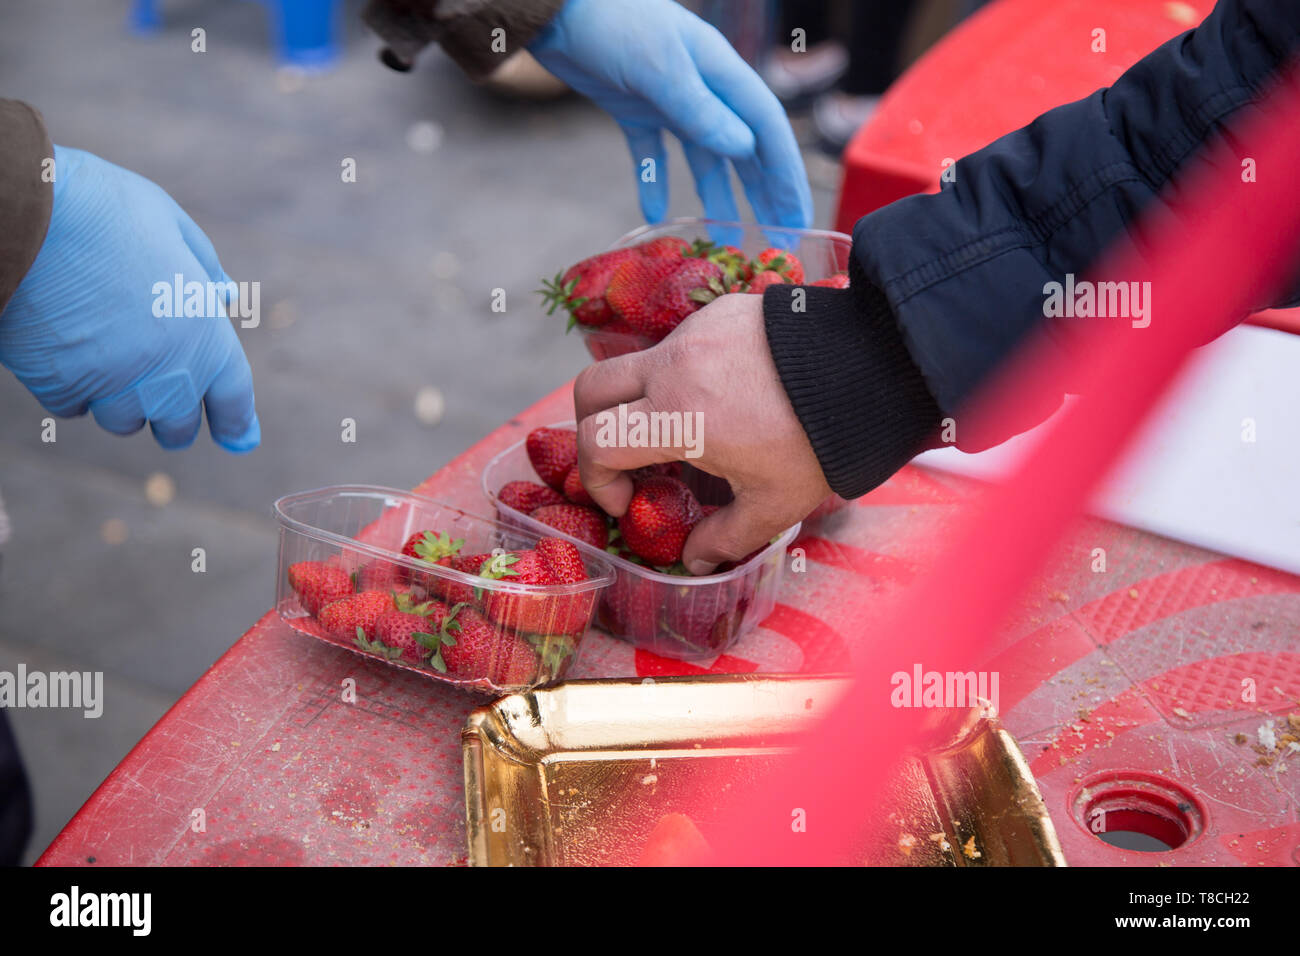 Roma, Italy. 11th May, 2019. A project organized by the Eco dalle Città association with the sponsorship of the I municipality to the new Esquilino market in Rome Credit: Matteo Nardone/Pacific Press/Alamy Live News - Stock Image